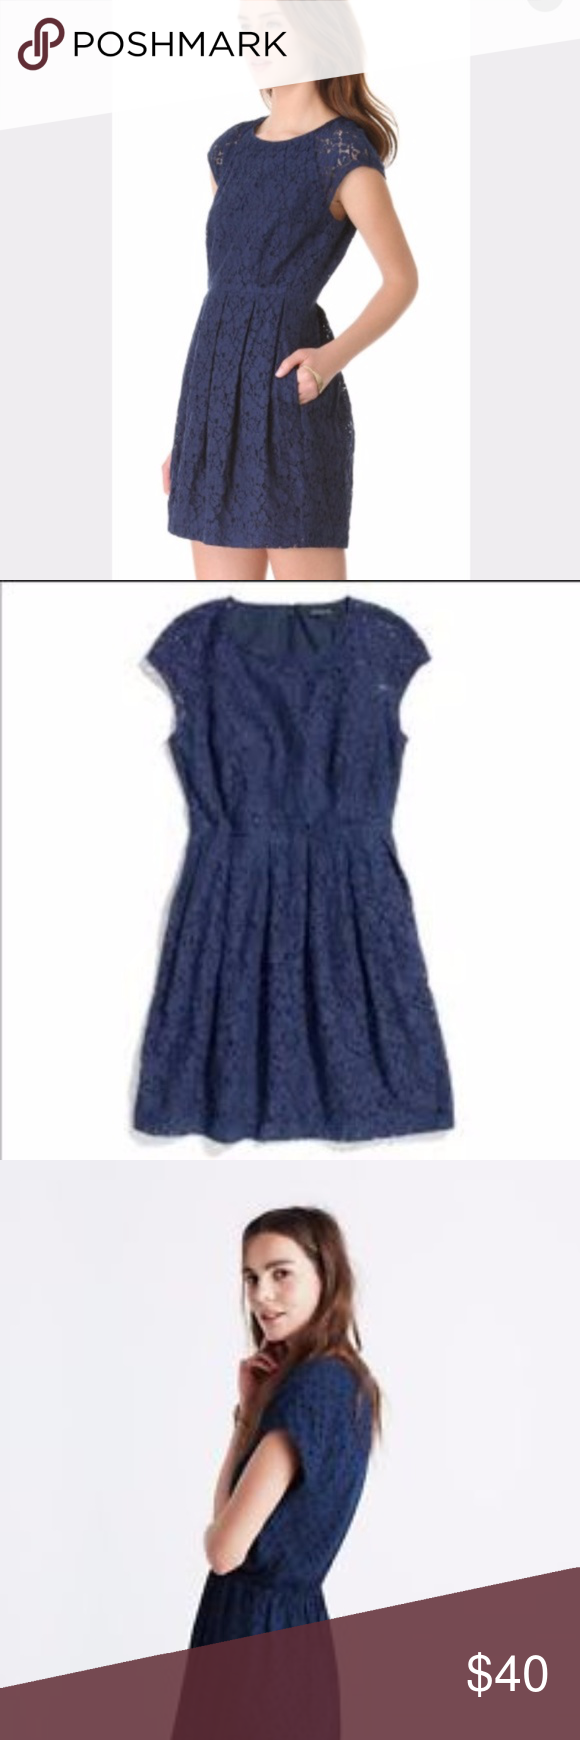 Lace dress navy blue  Madewell navy blue lace dress medium  Madewell Madewell dresses